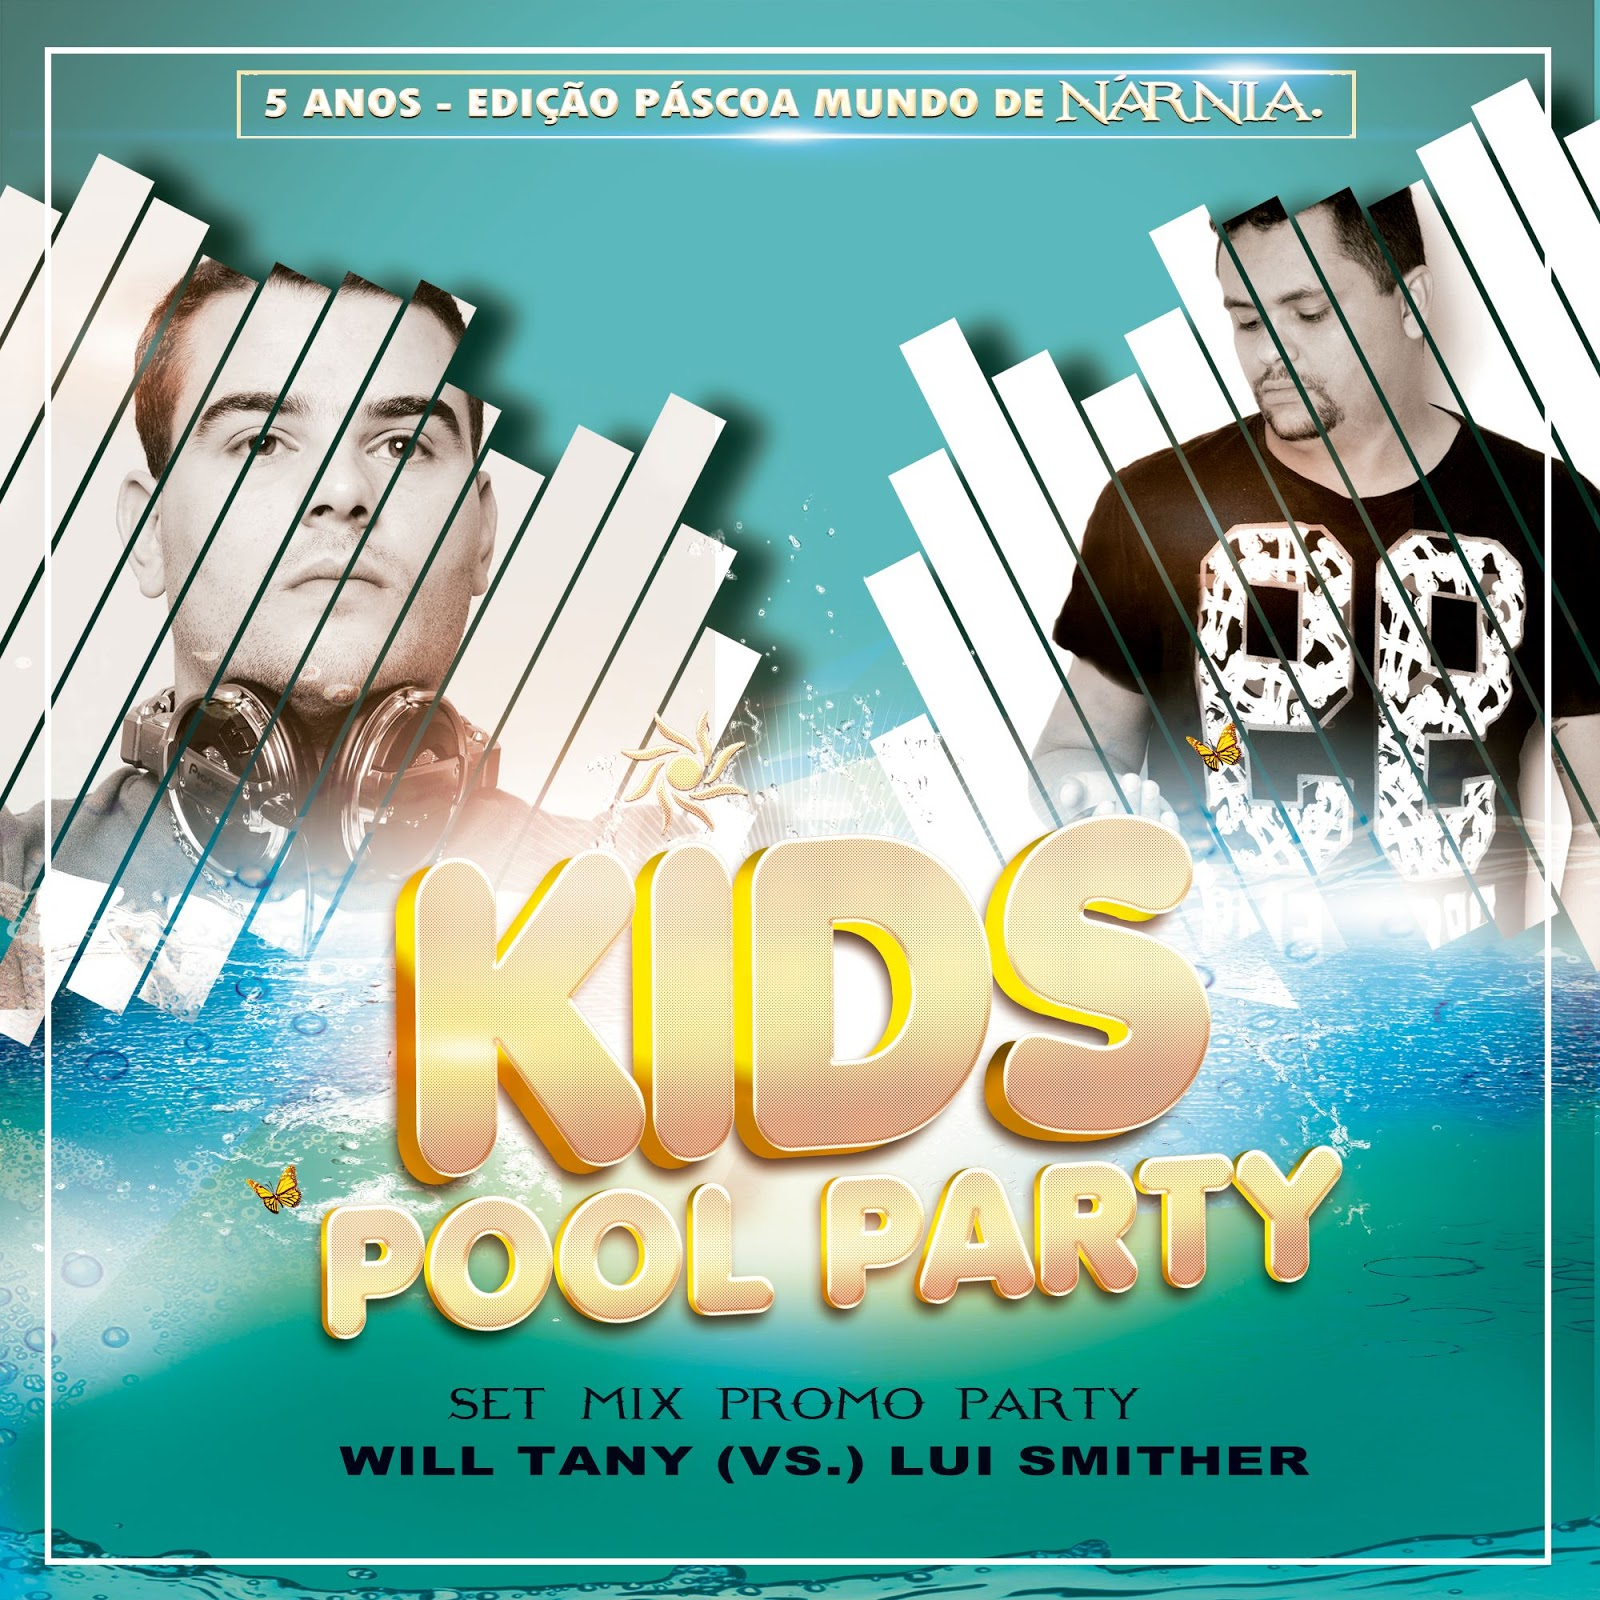 Lui Smither Vs. Will Tany - Kids Pool Party Set Promo